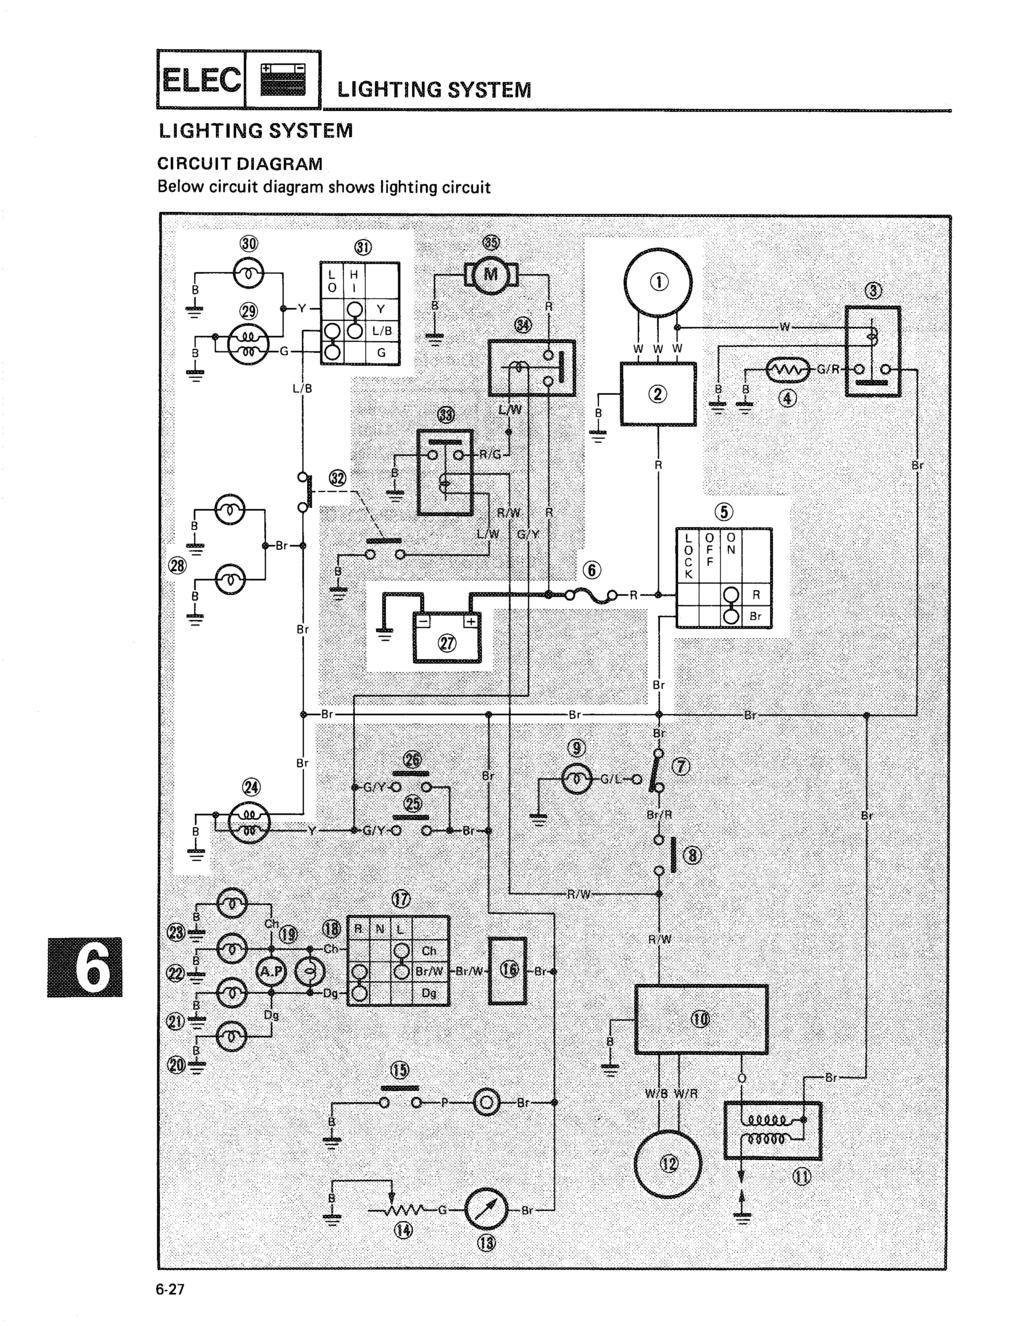 Downloaded From Pdf Bmw L6 M6 Electrical Troubleshooting And 87car Wiring Diagram Ielec Lighting System Circuit Below